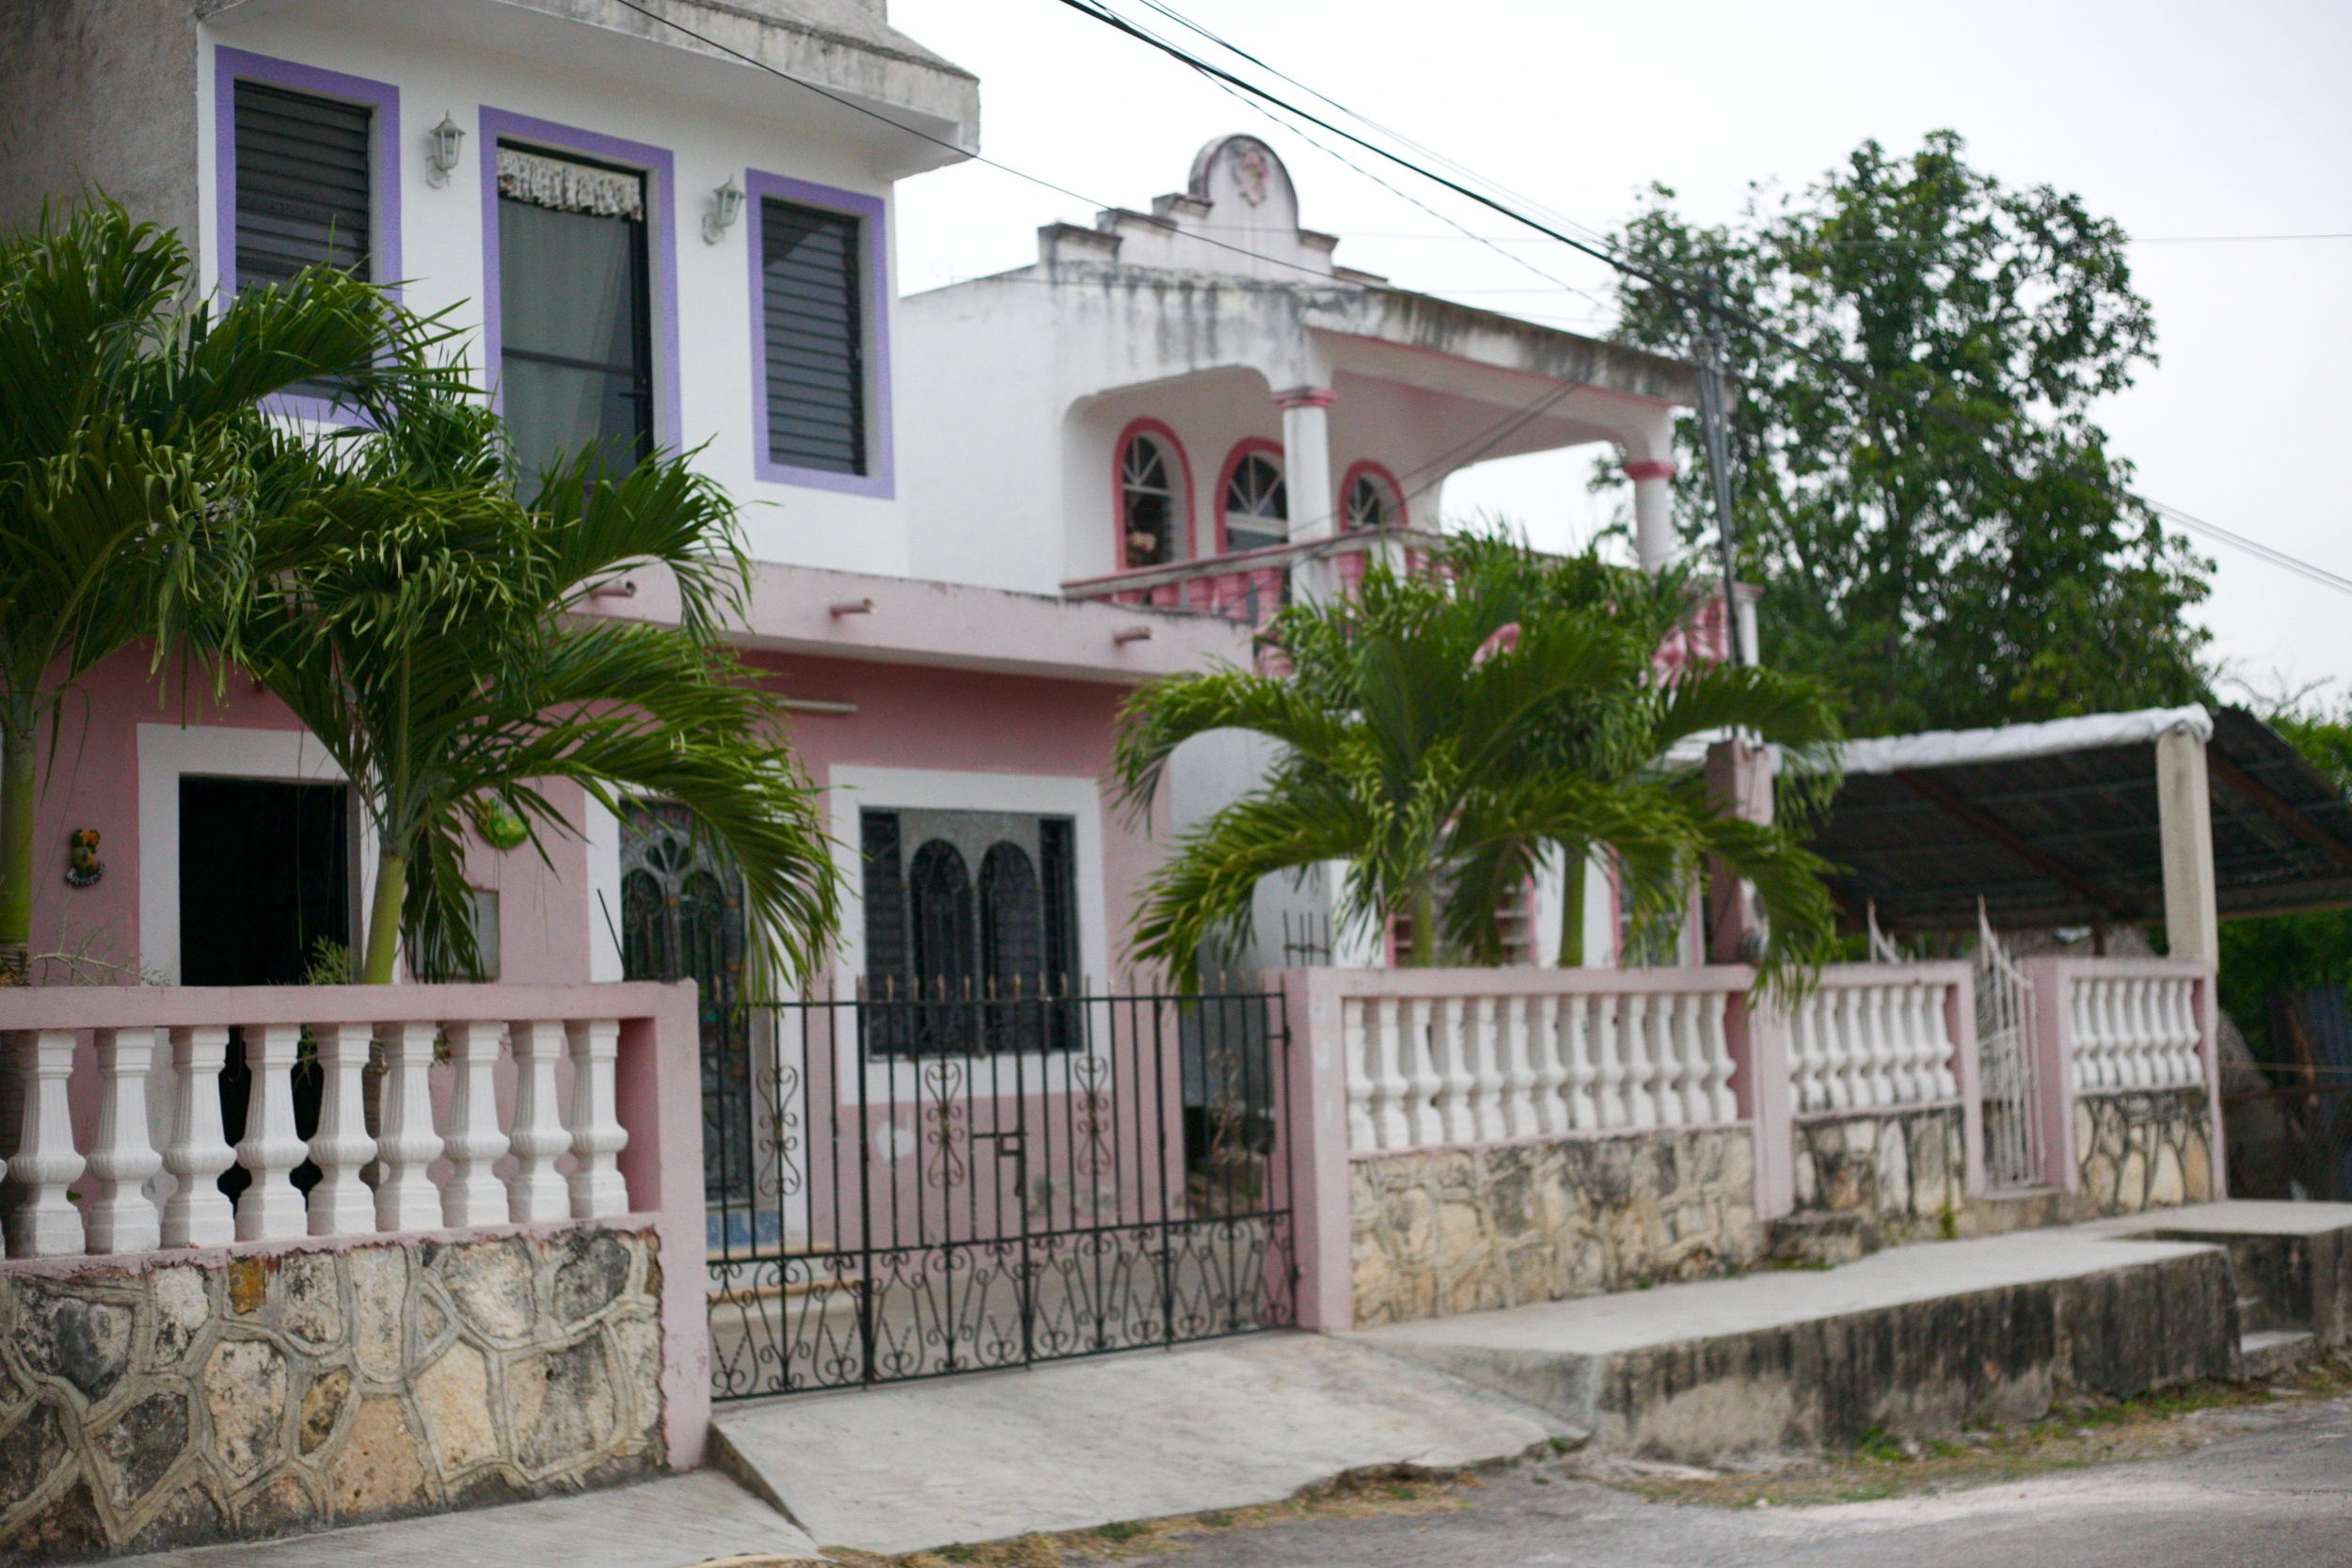 Pink concrete houses and palm trees in Mexico.